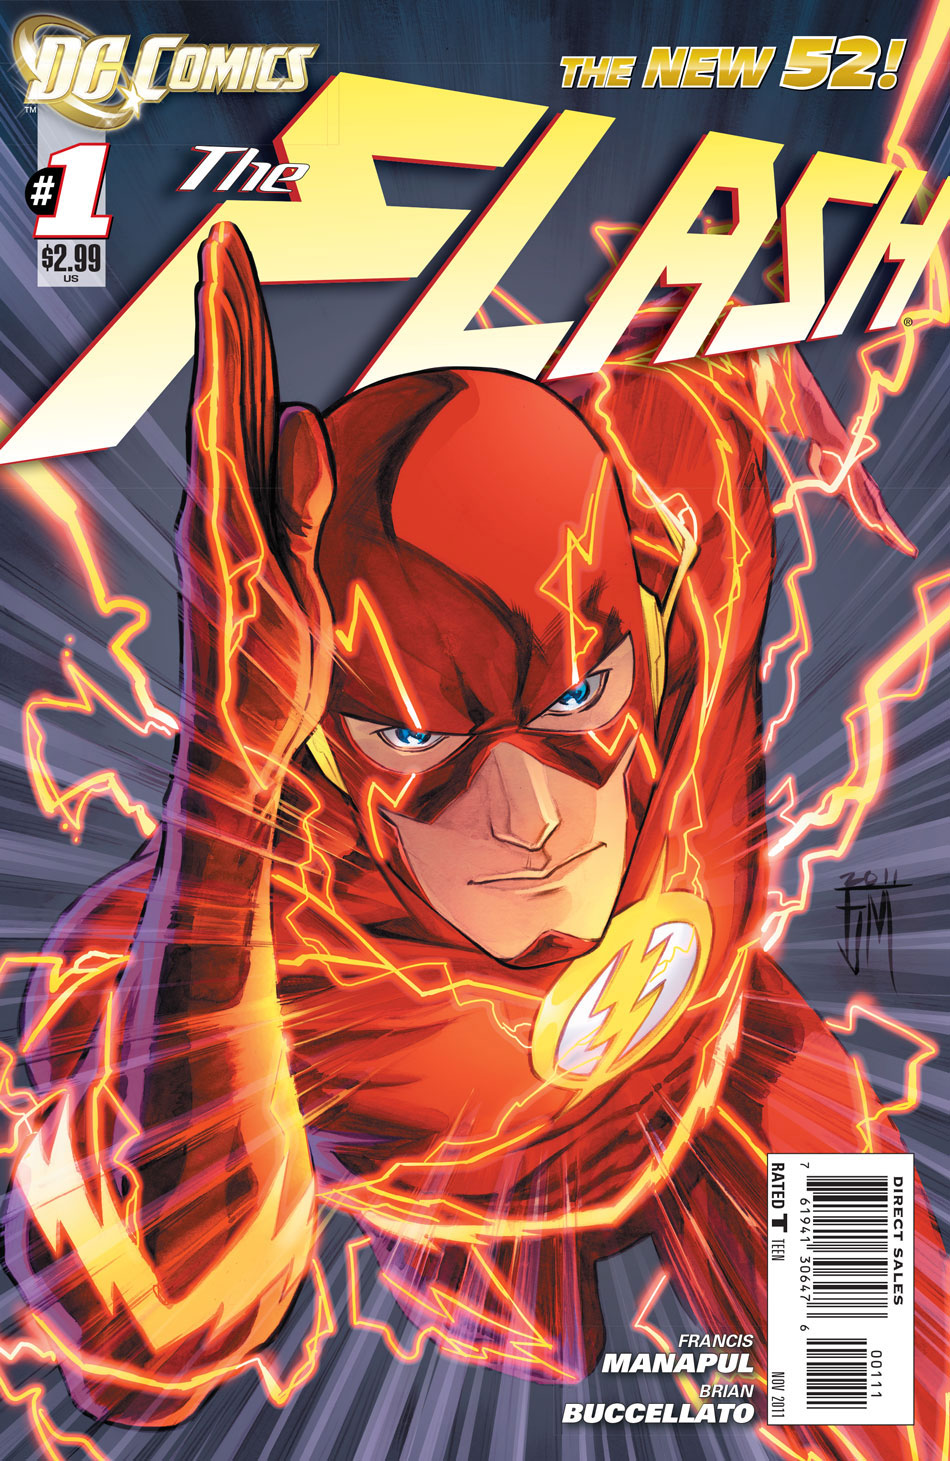 The Flash #1 cover by Francis Manapul and Brian Buccellato